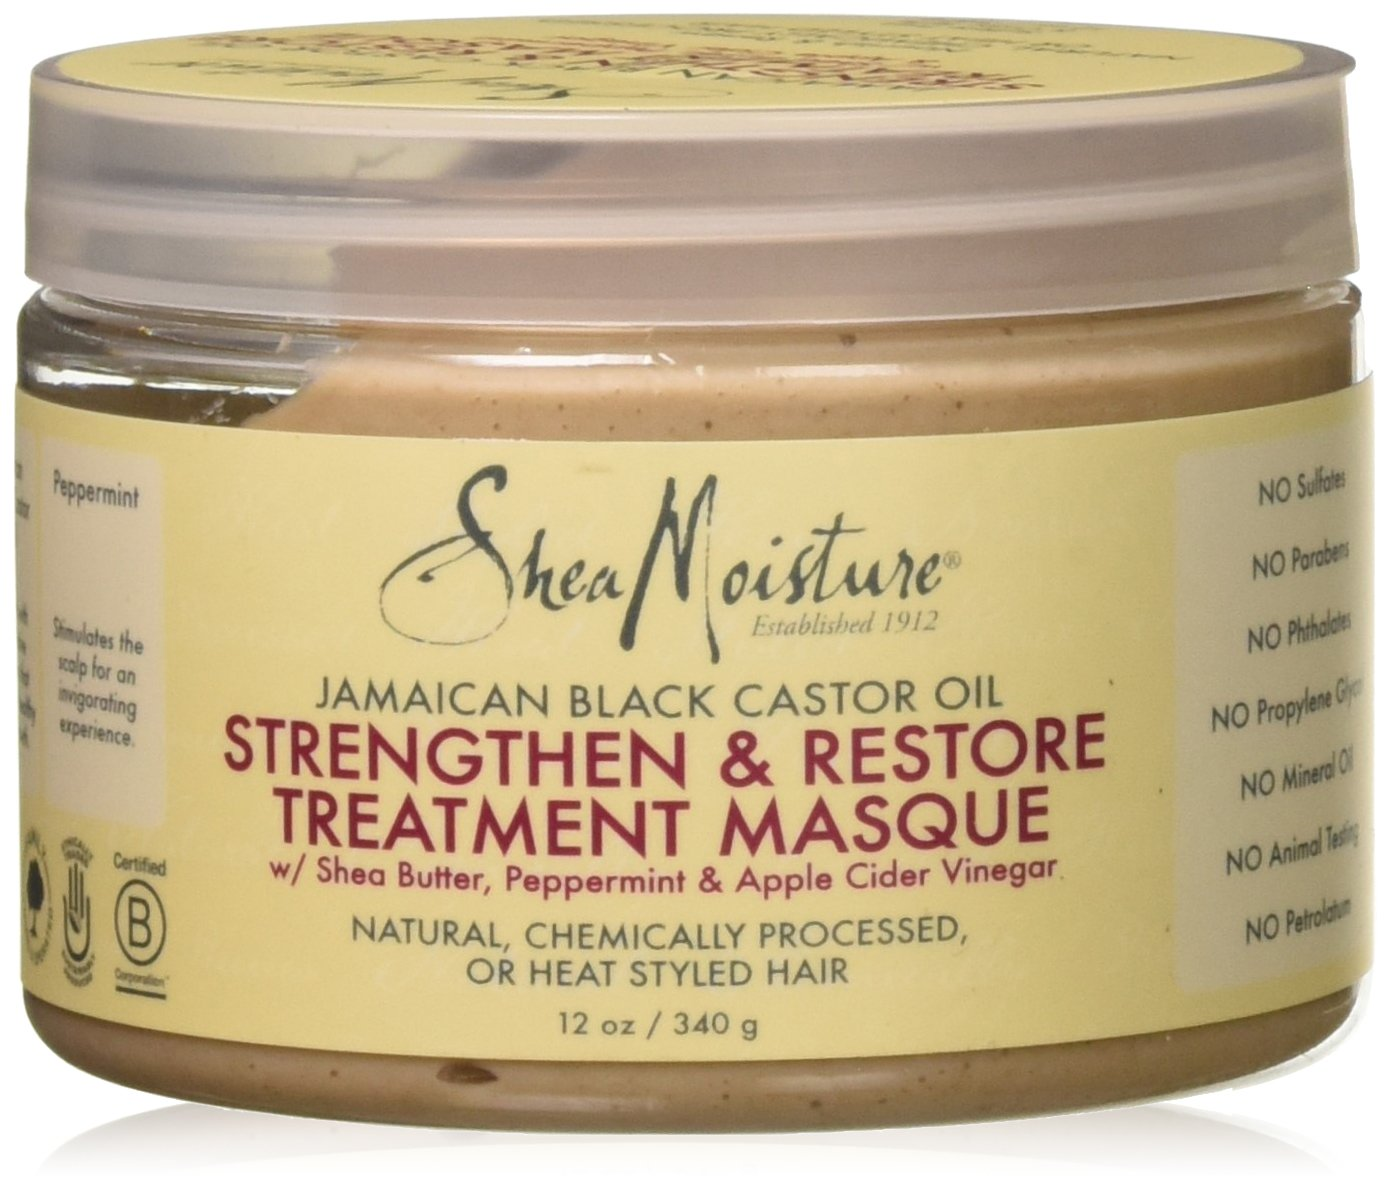 Shea Moisture Jamaican Black Castor Oil Strengthen Grow & Restore Treatment Masque 340g GT WORLD OF BEAUTY GmbH 215554